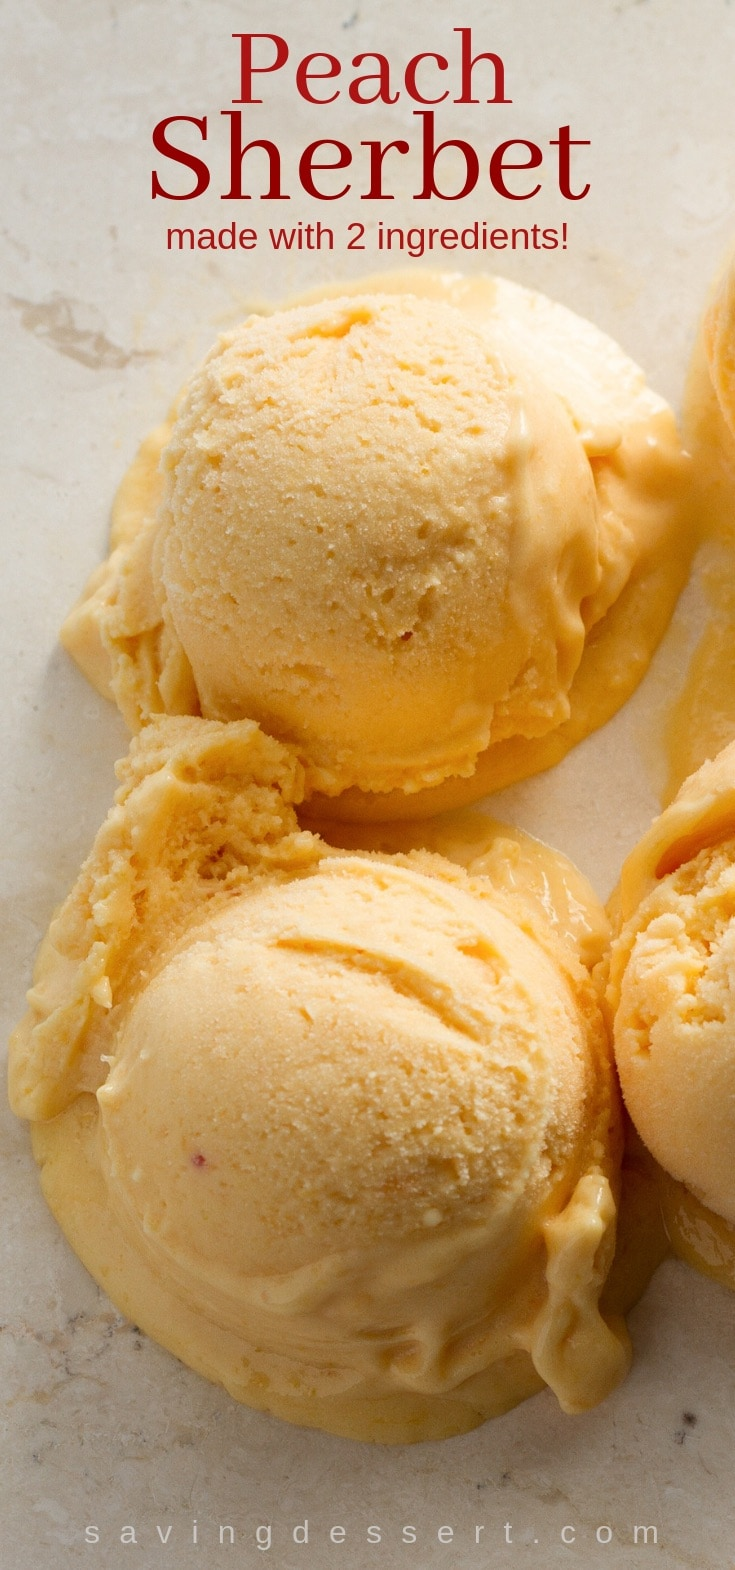 Scoops of frozen peach sherbet